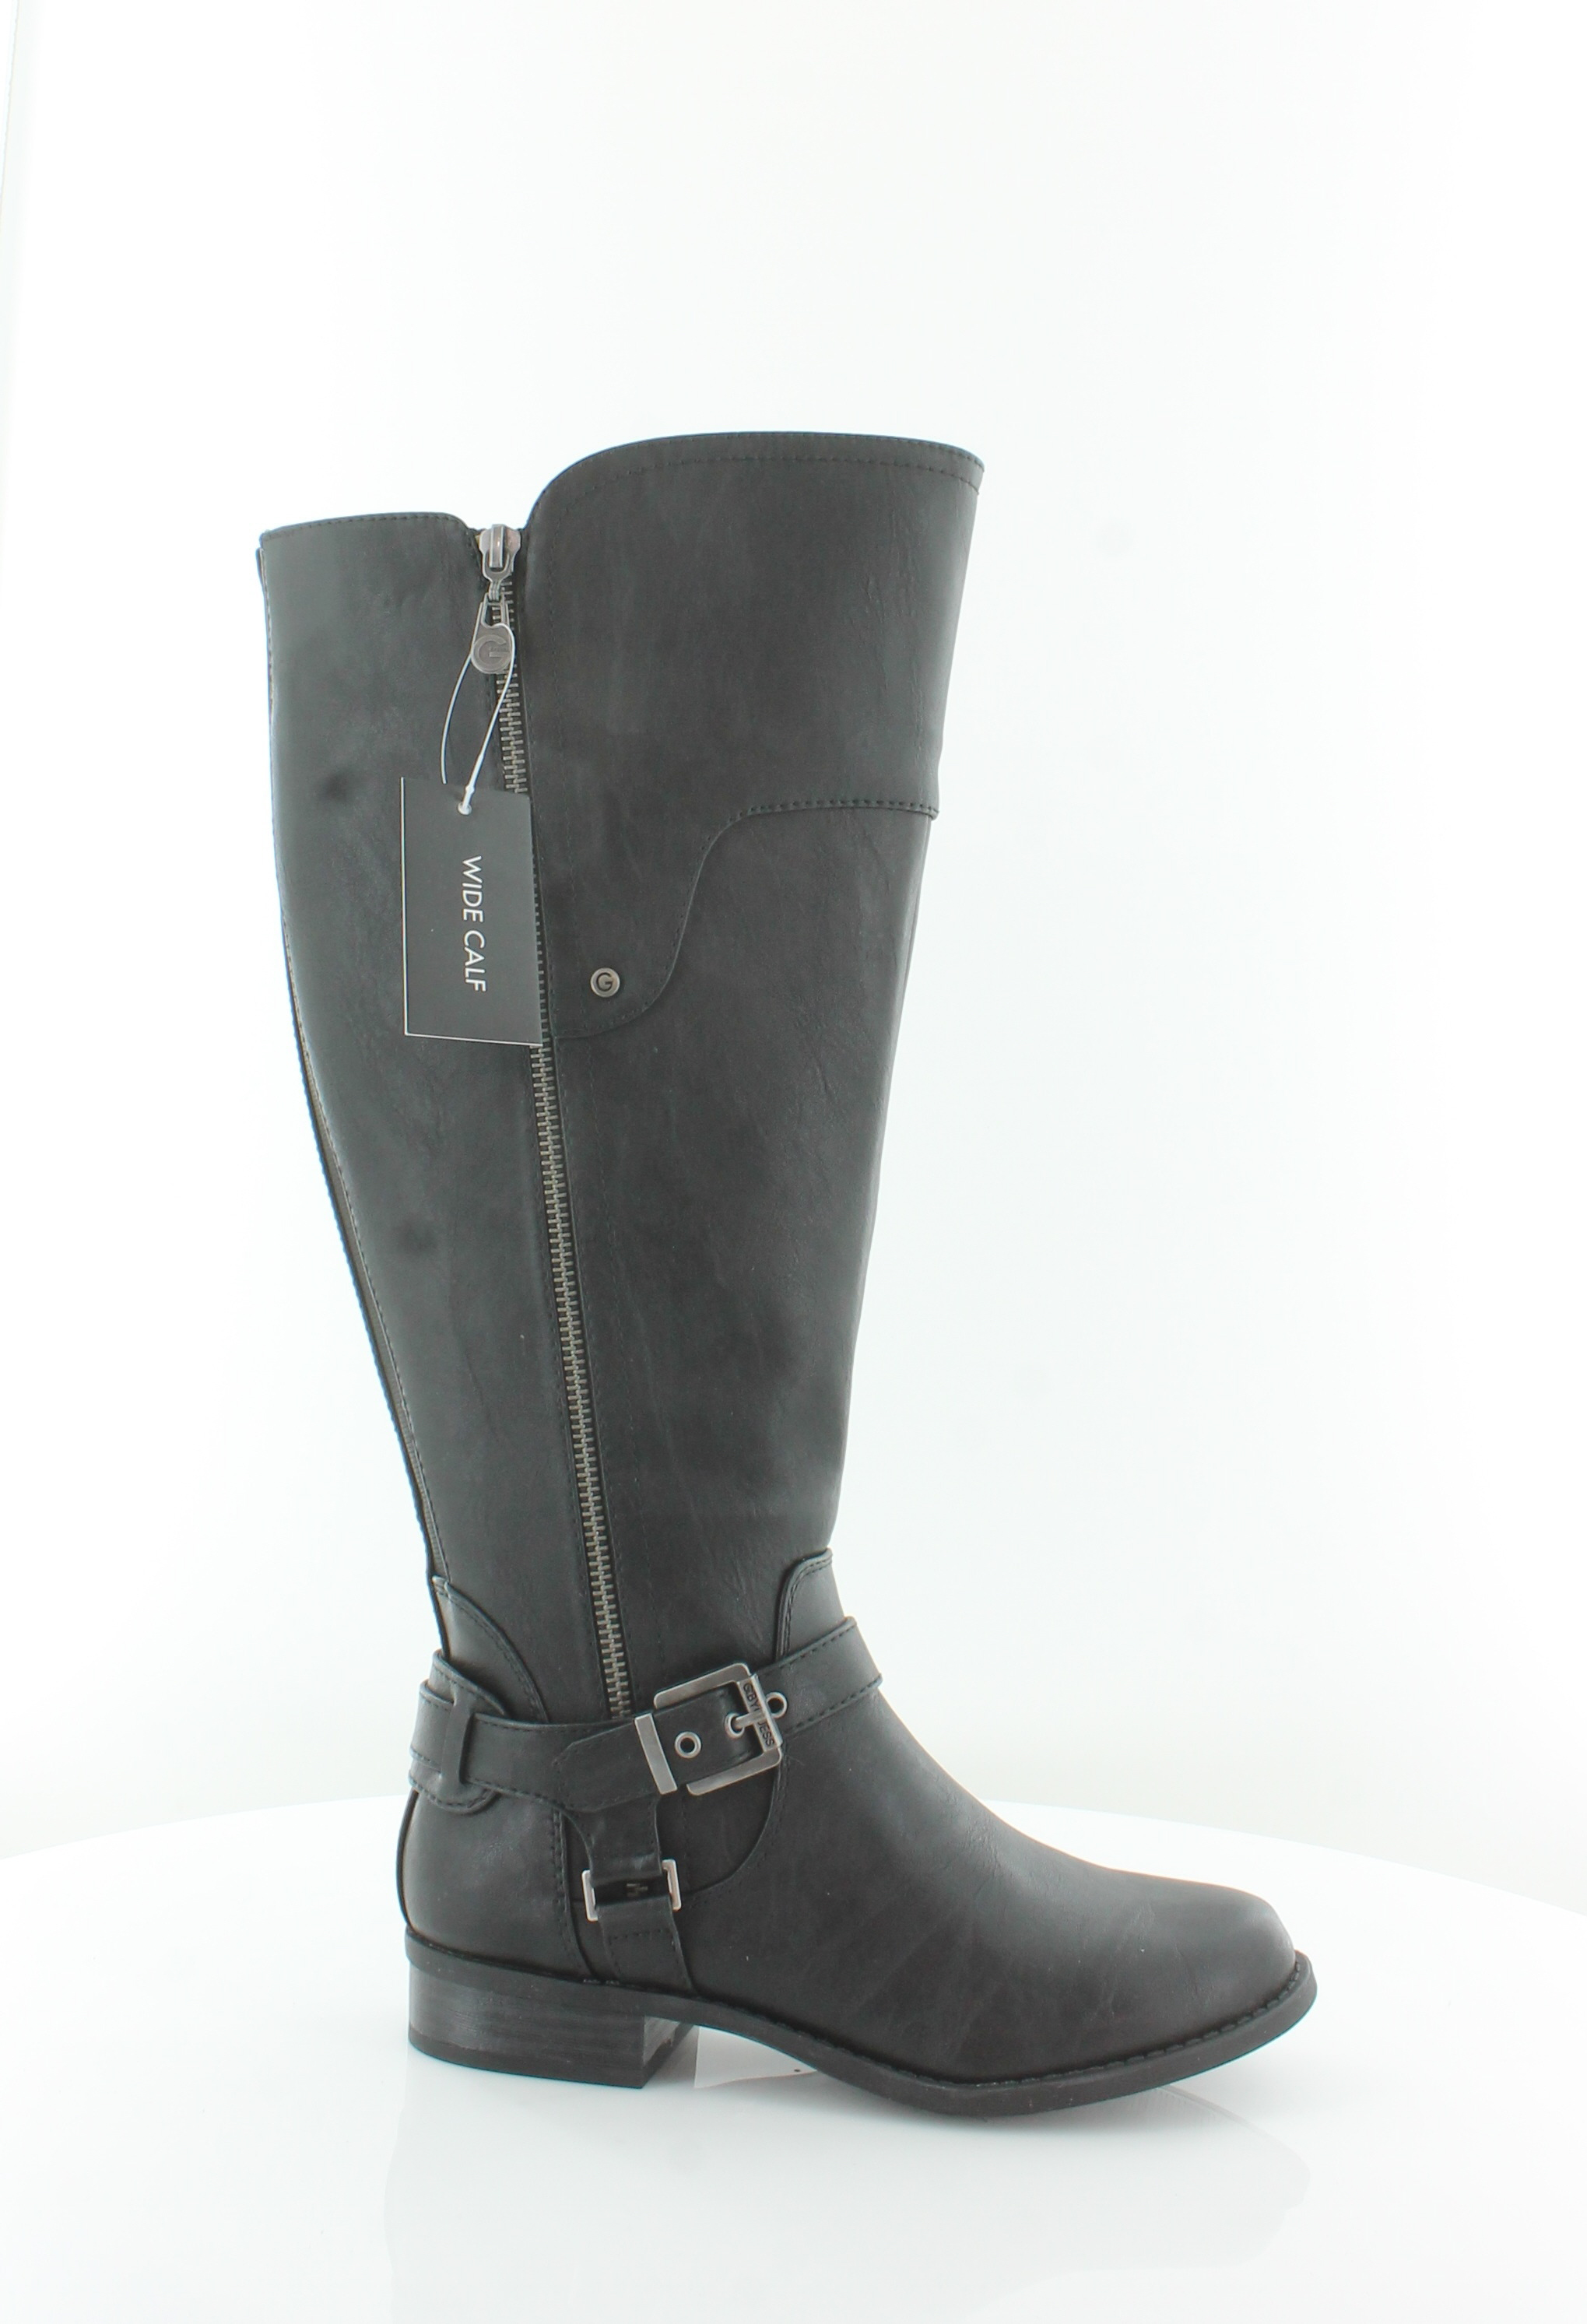 G By Guess Harson Tall Riding Boots 521 Black Multi 85 Us For Sale